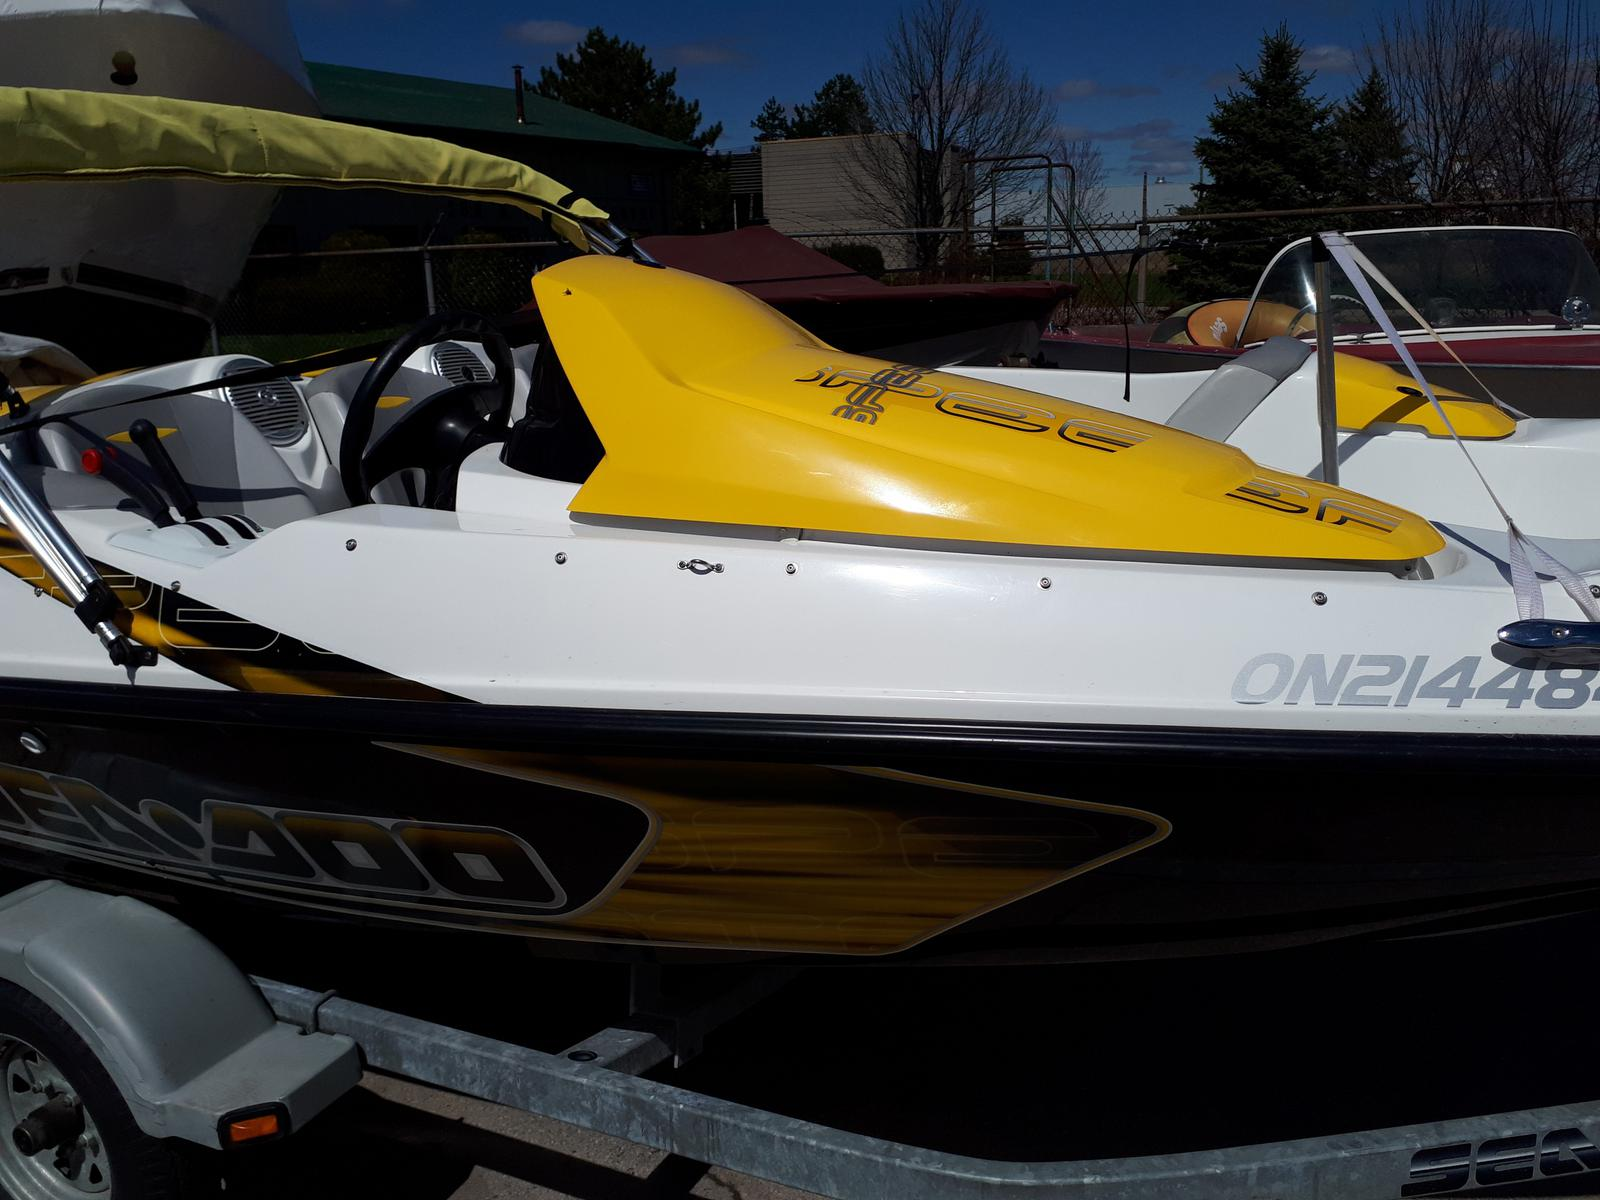 2009 Sea Doo Sportboat boat for sale, model of the boat is SPEEDSTER 150 & Image # 2 of 5